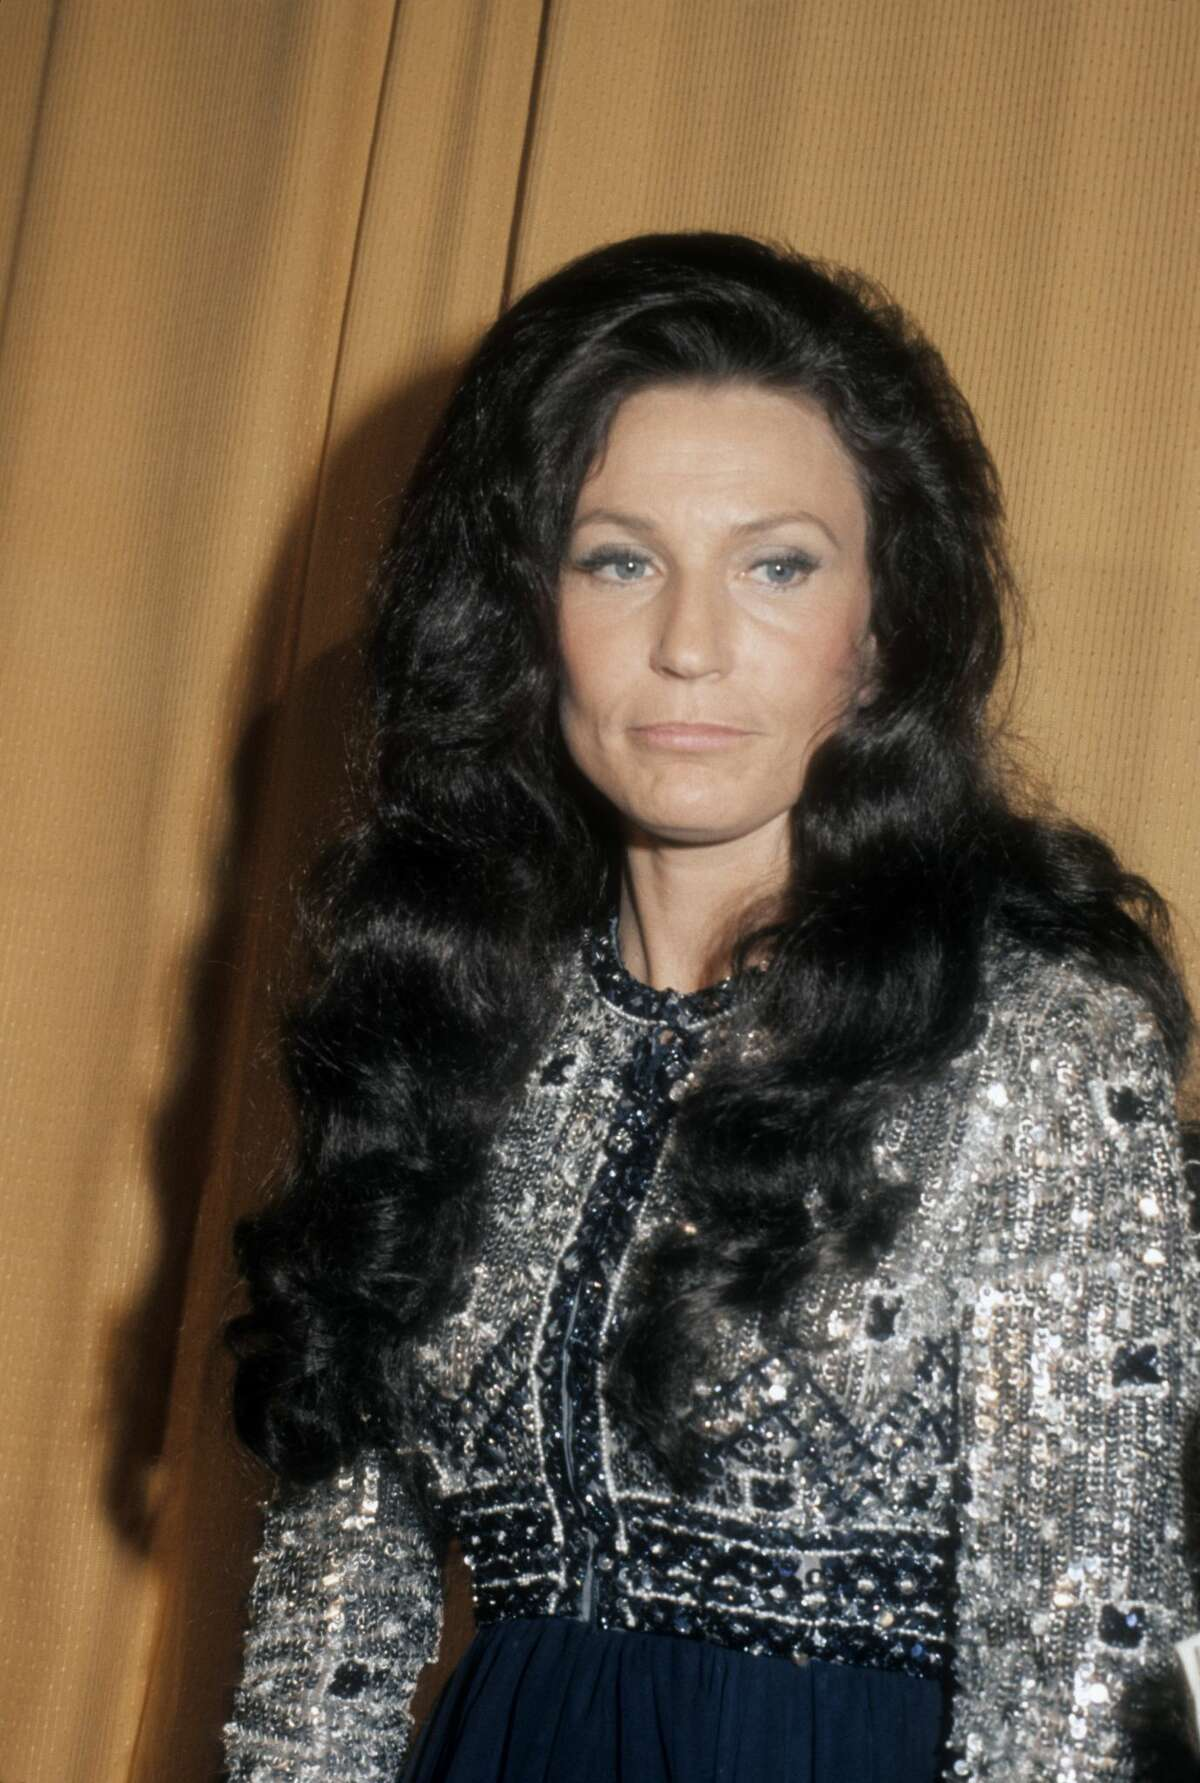 Country singer Loretta Lynn attends the 6th Annual CMA Awards at the Ryman Auditorium in 1972 in Nashville, Tennessee.